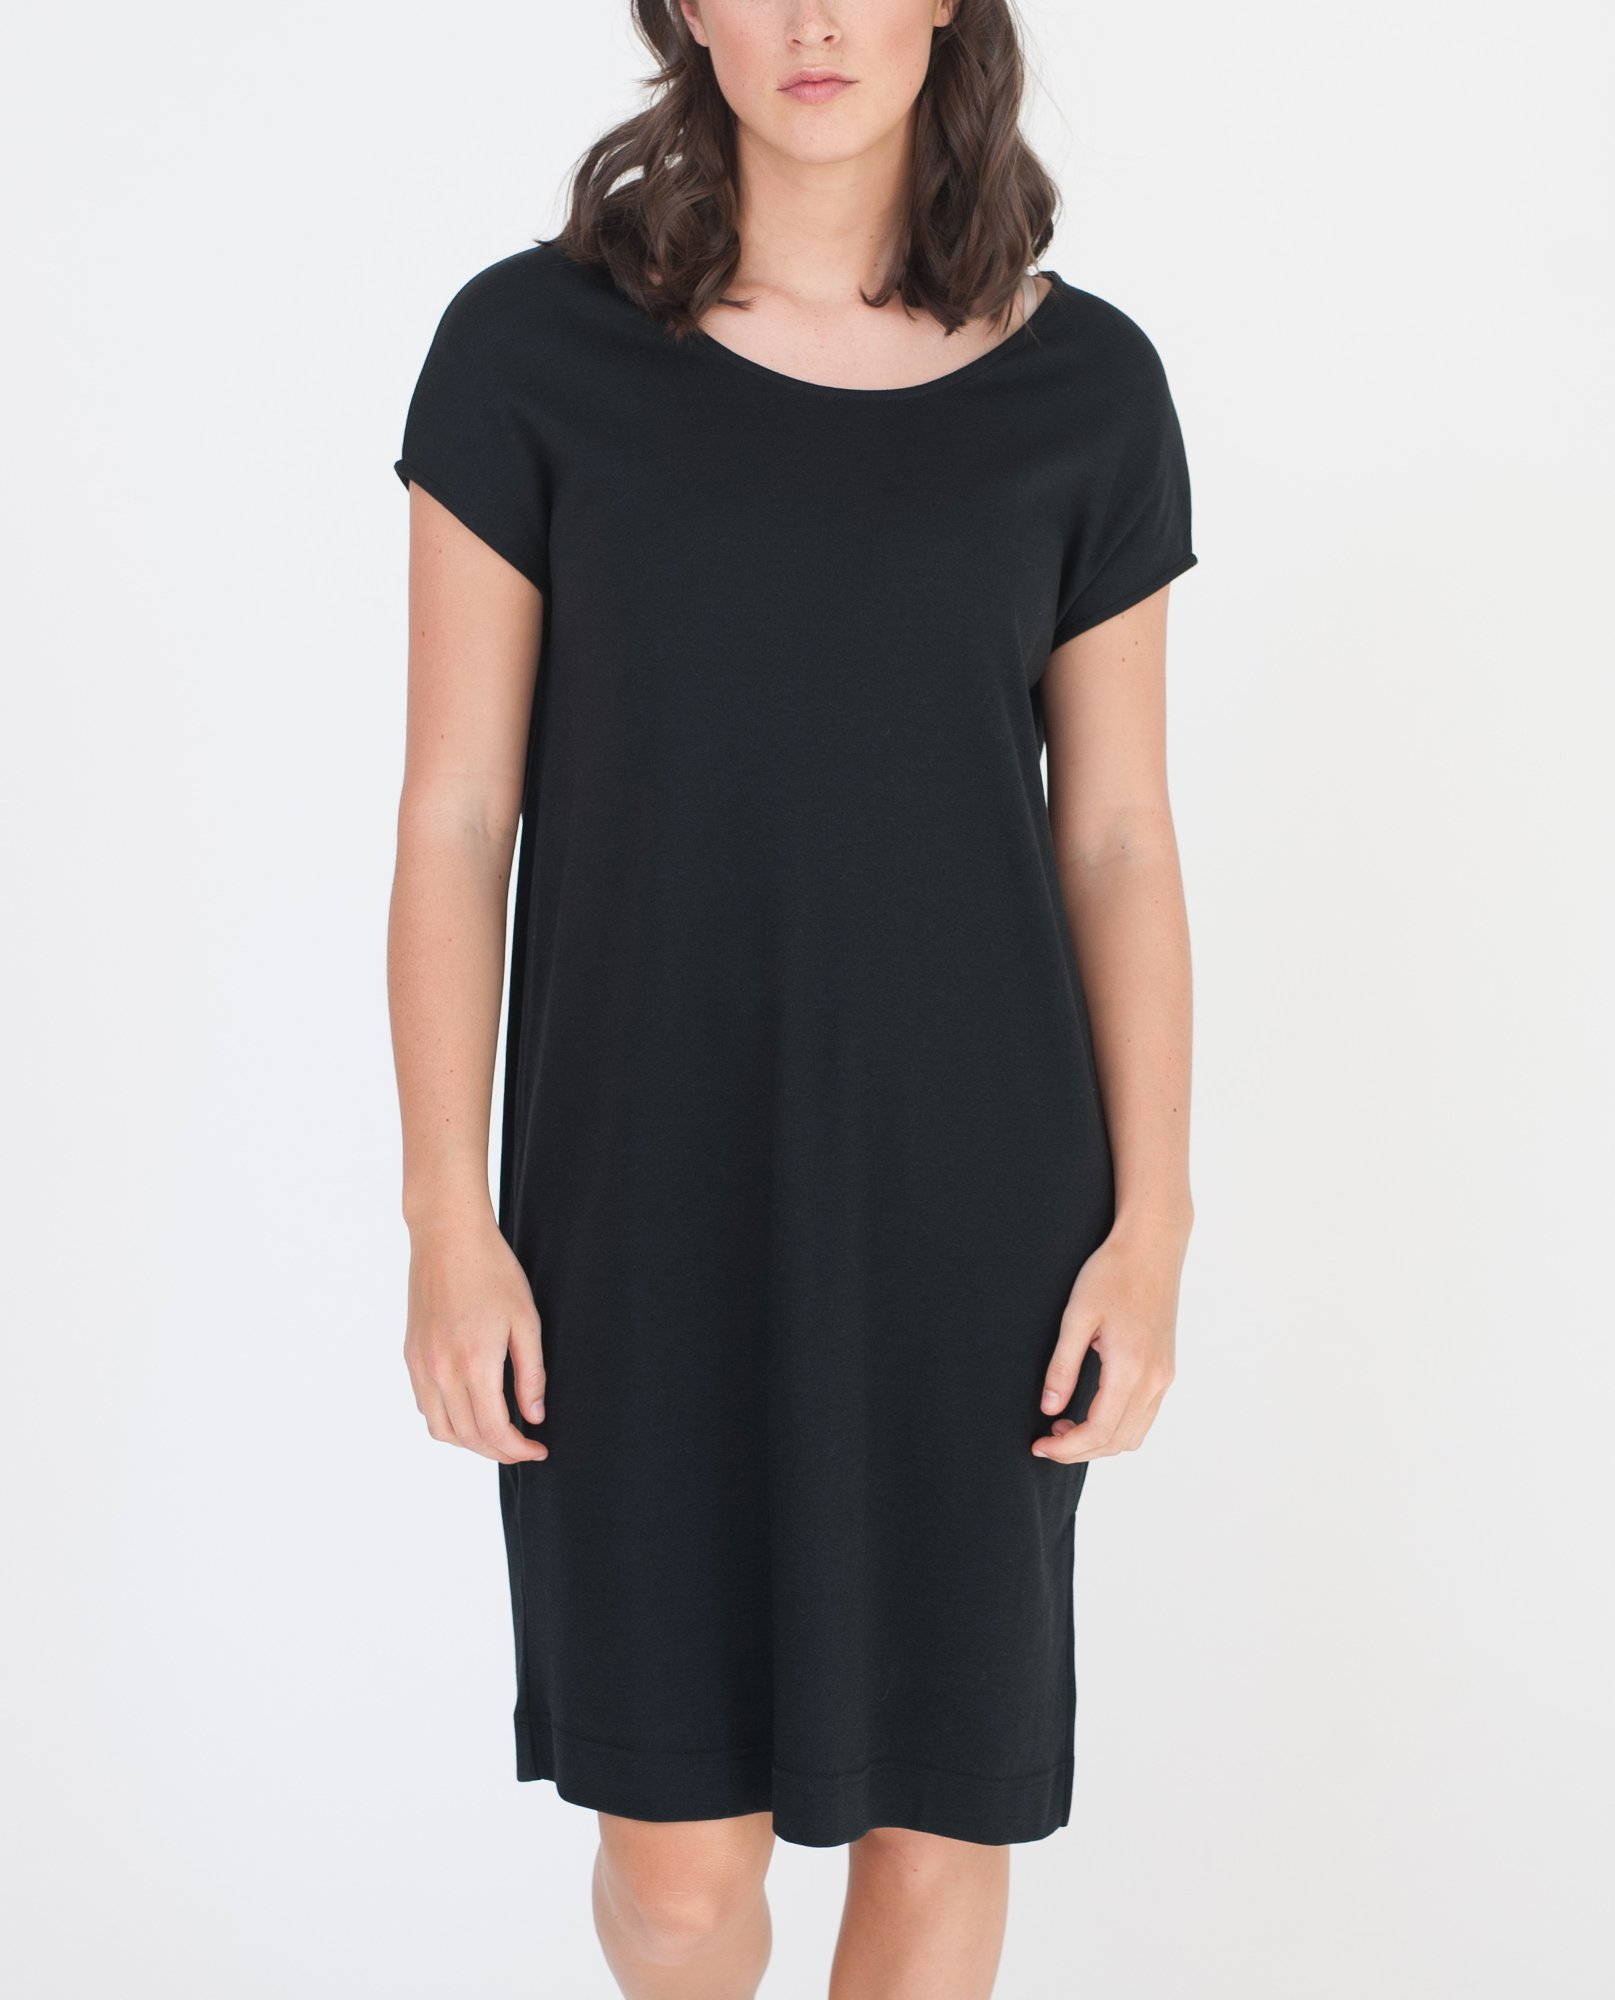 AZALEA Lyocell And Cotton Dress from Beaumont Organic